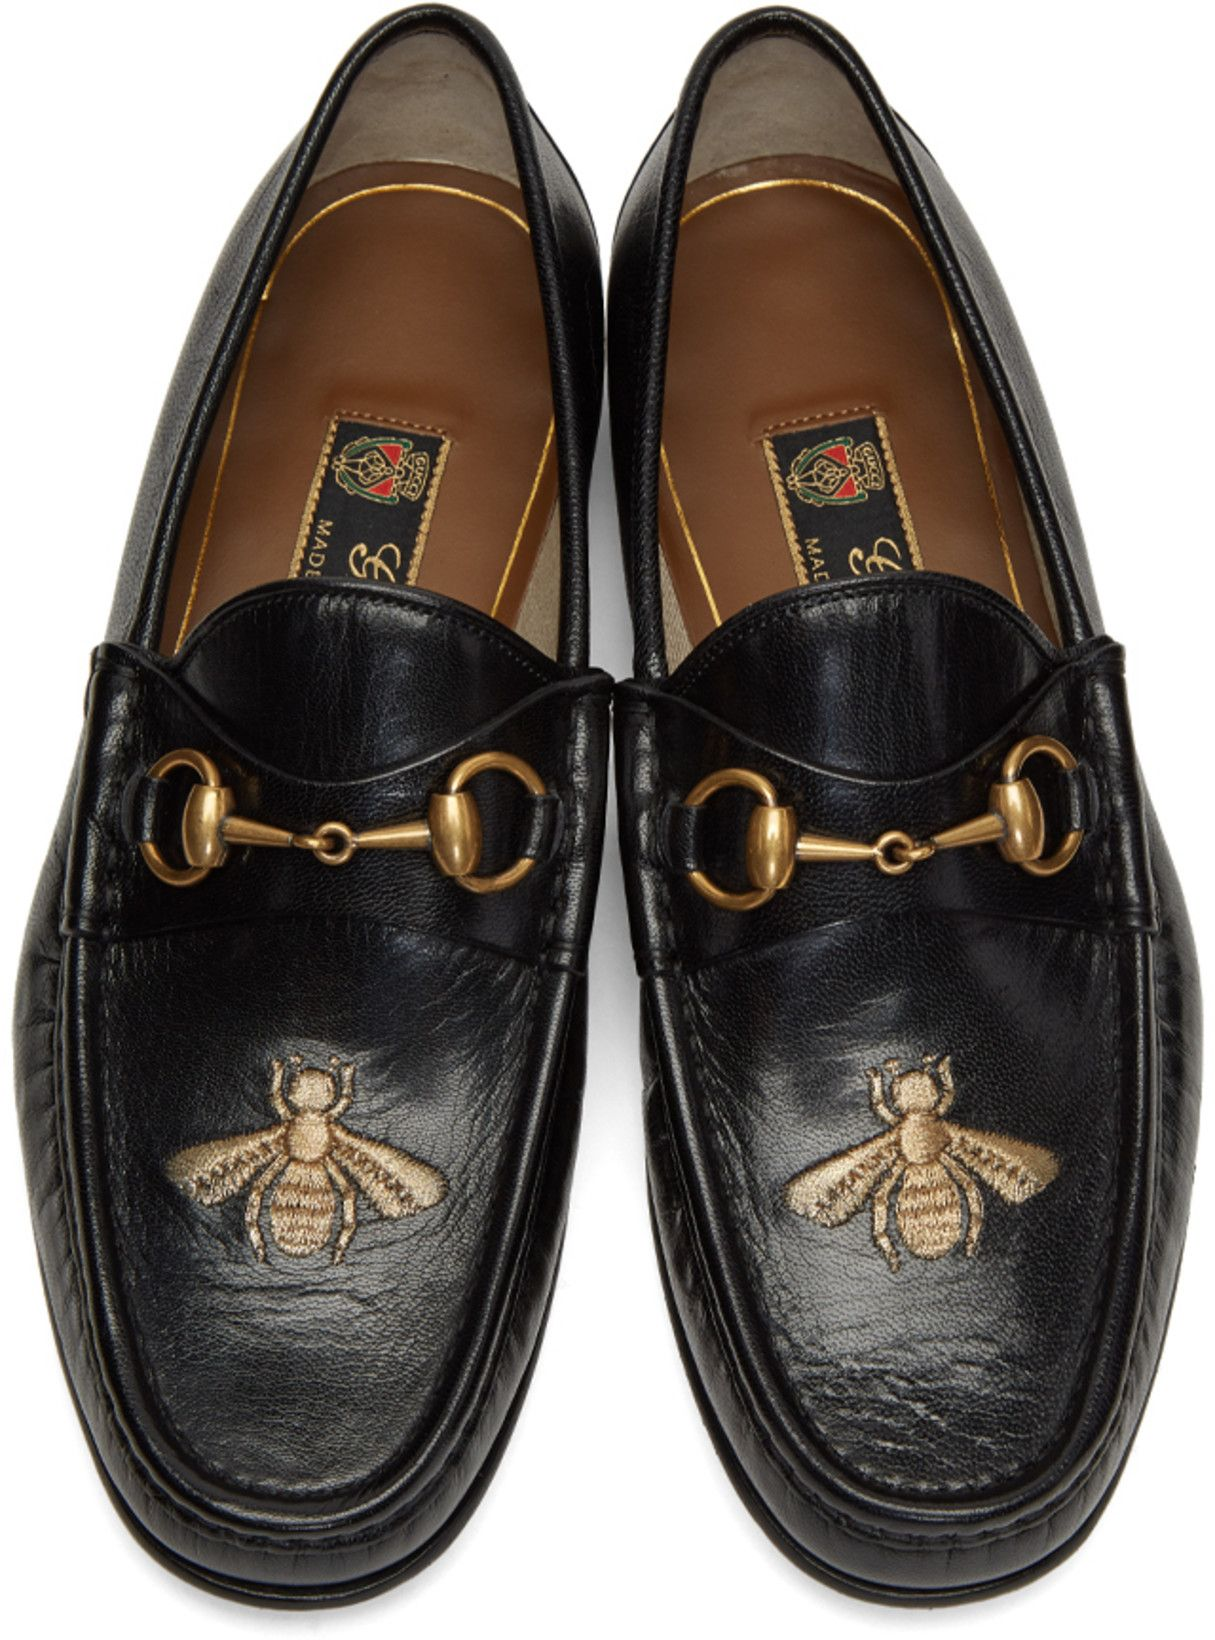 Black Bee Horsebit Loafers Gucci YQdBm2P2Q